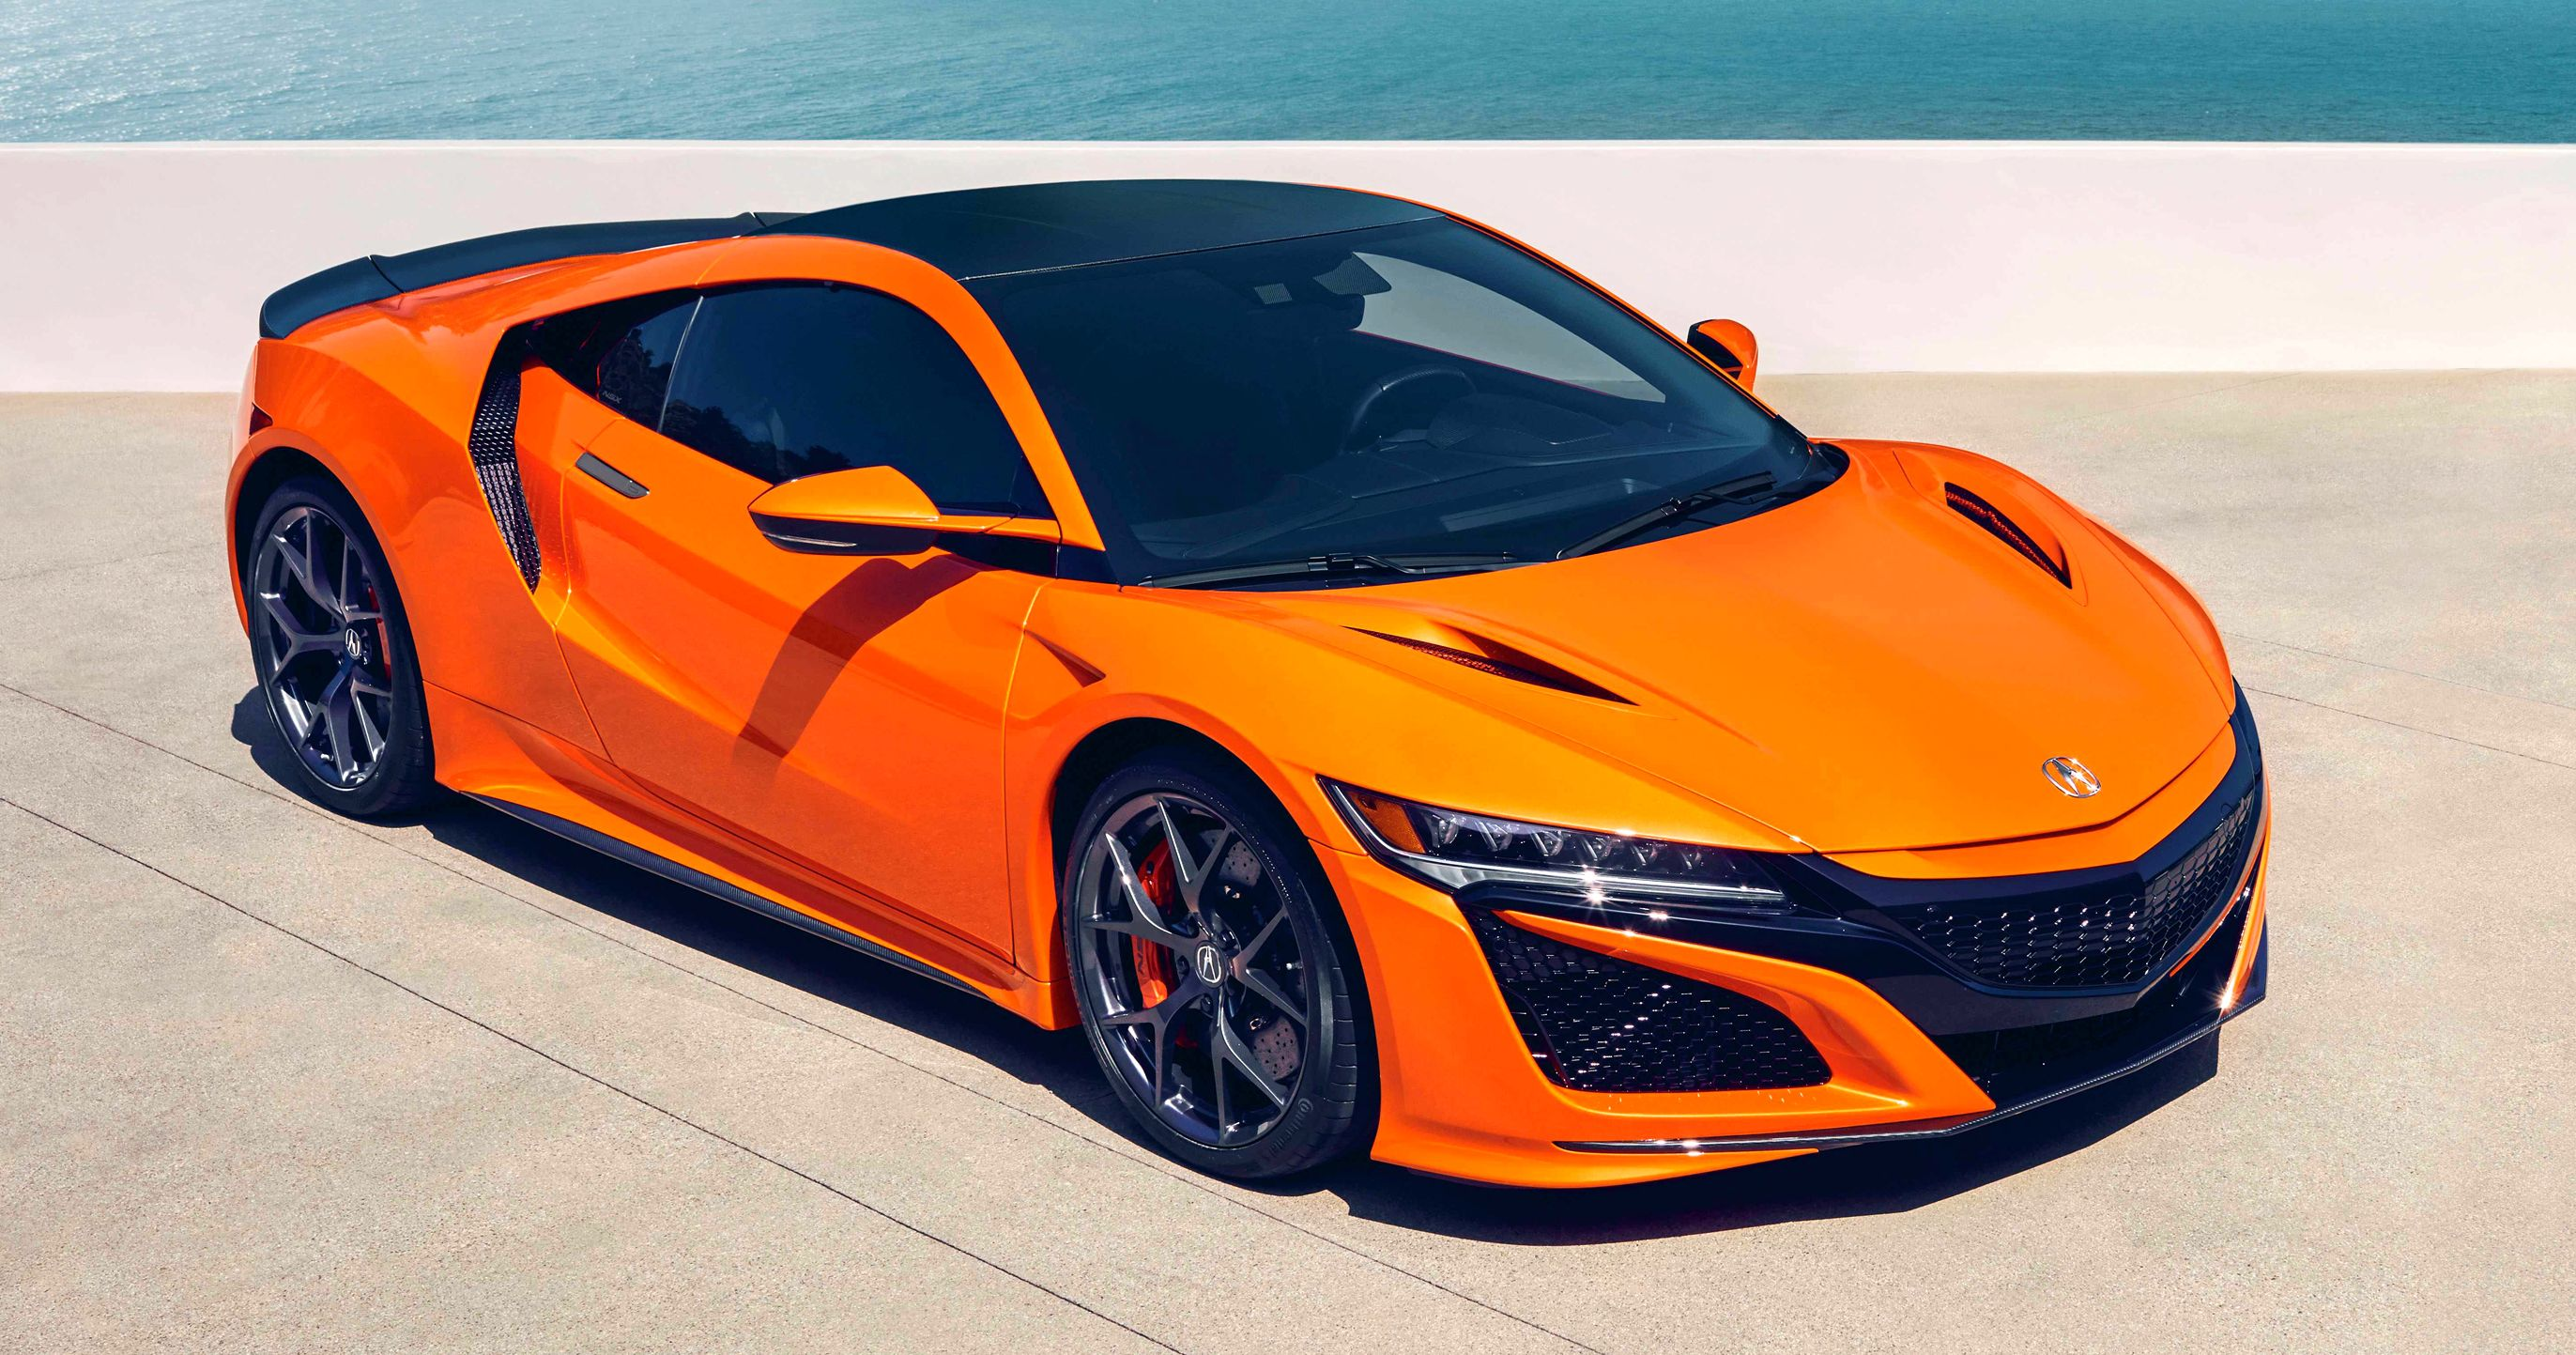 Hot Acura Nsx Type R With 650 Hp To Debut In Tokyo Paultan Org